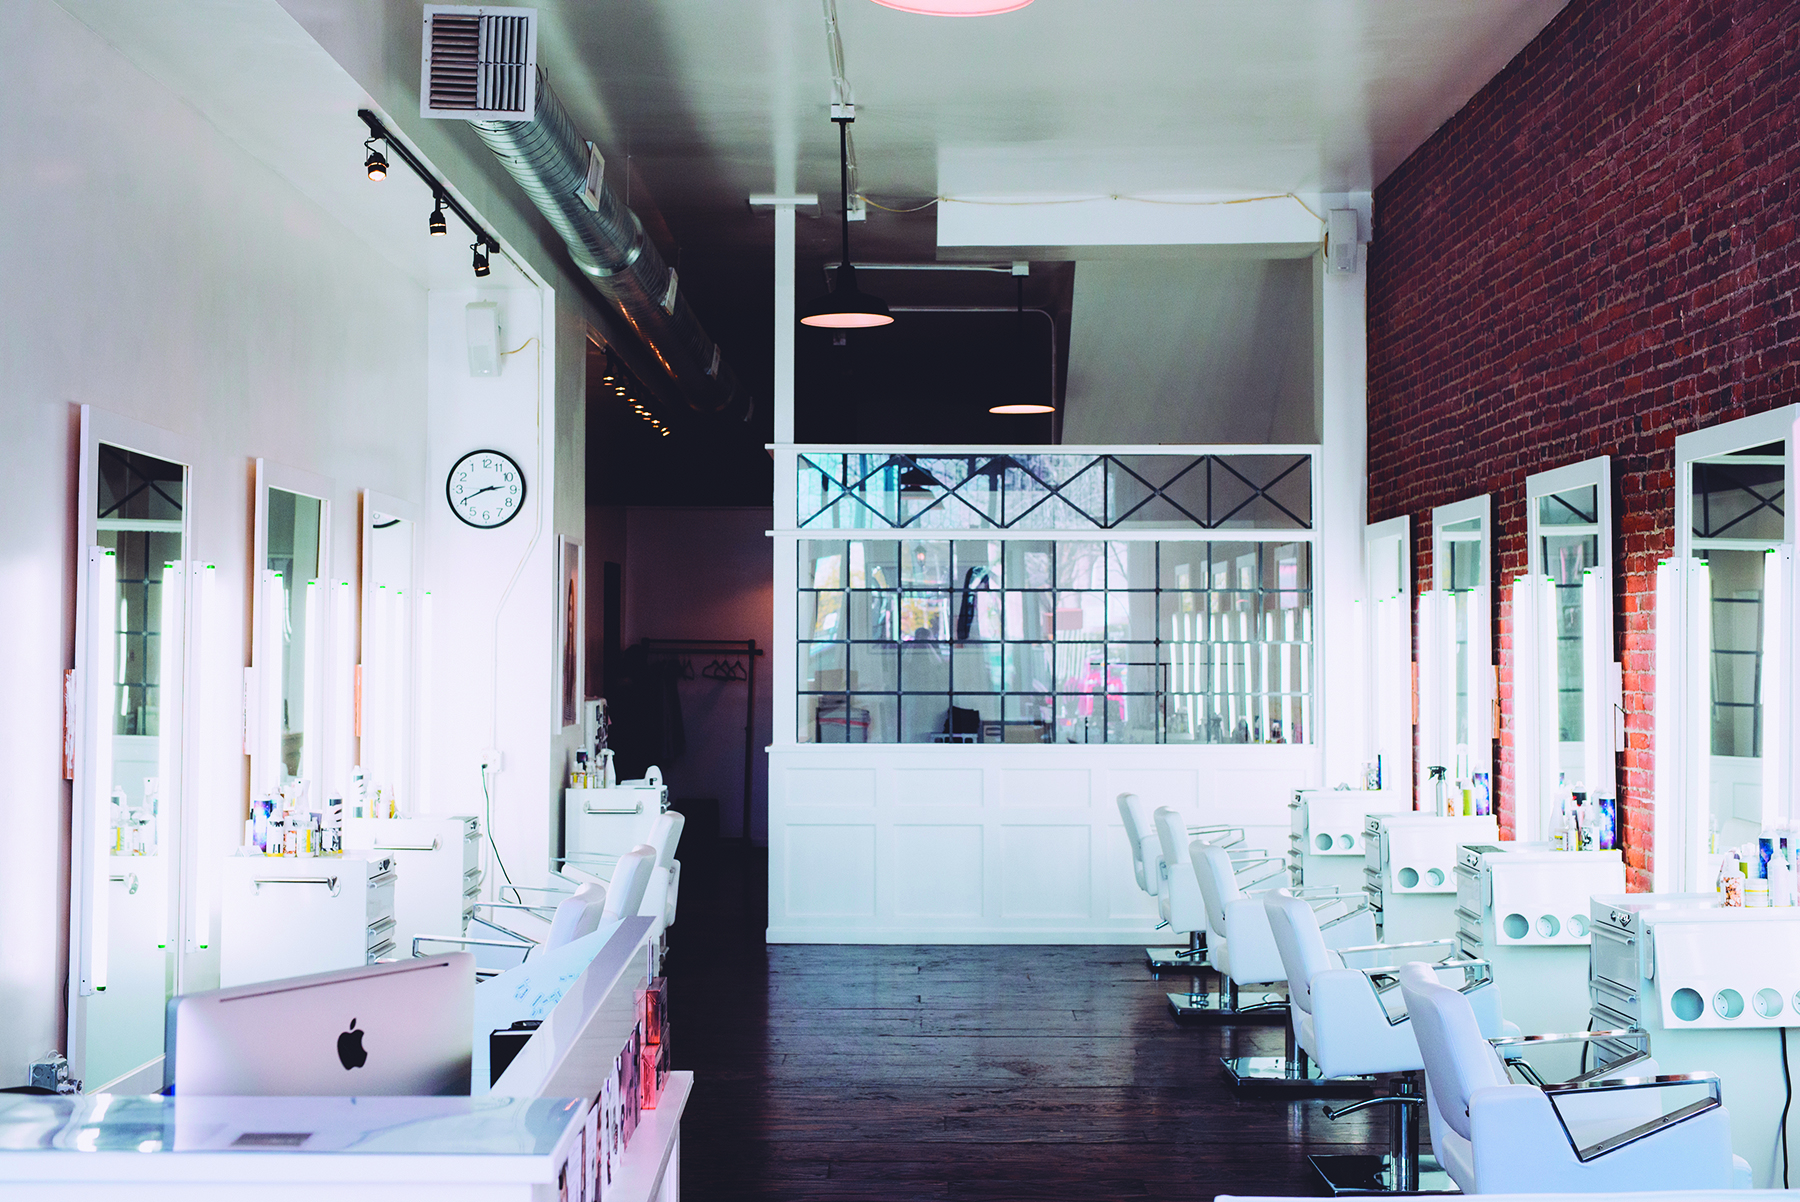 A view of the salon's clean, white interior.